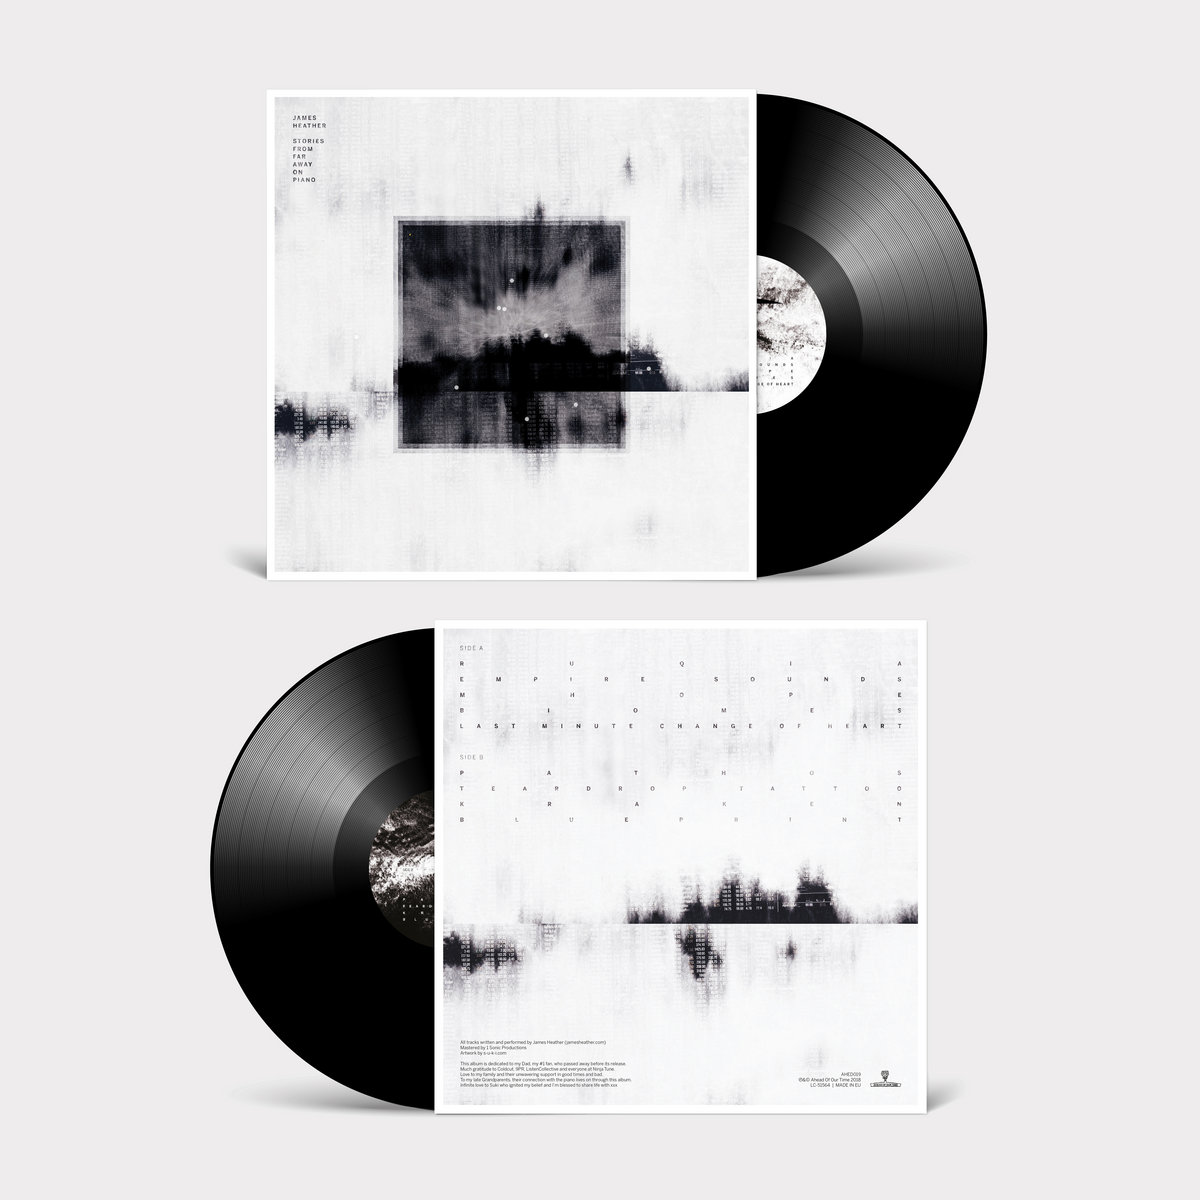 Blueprint james heather 180g black 12 vinyl housed in matte sleeve with spot gloss detail spine and black paper inners download code included artwork by suki s u k i malvernweather Choice Image